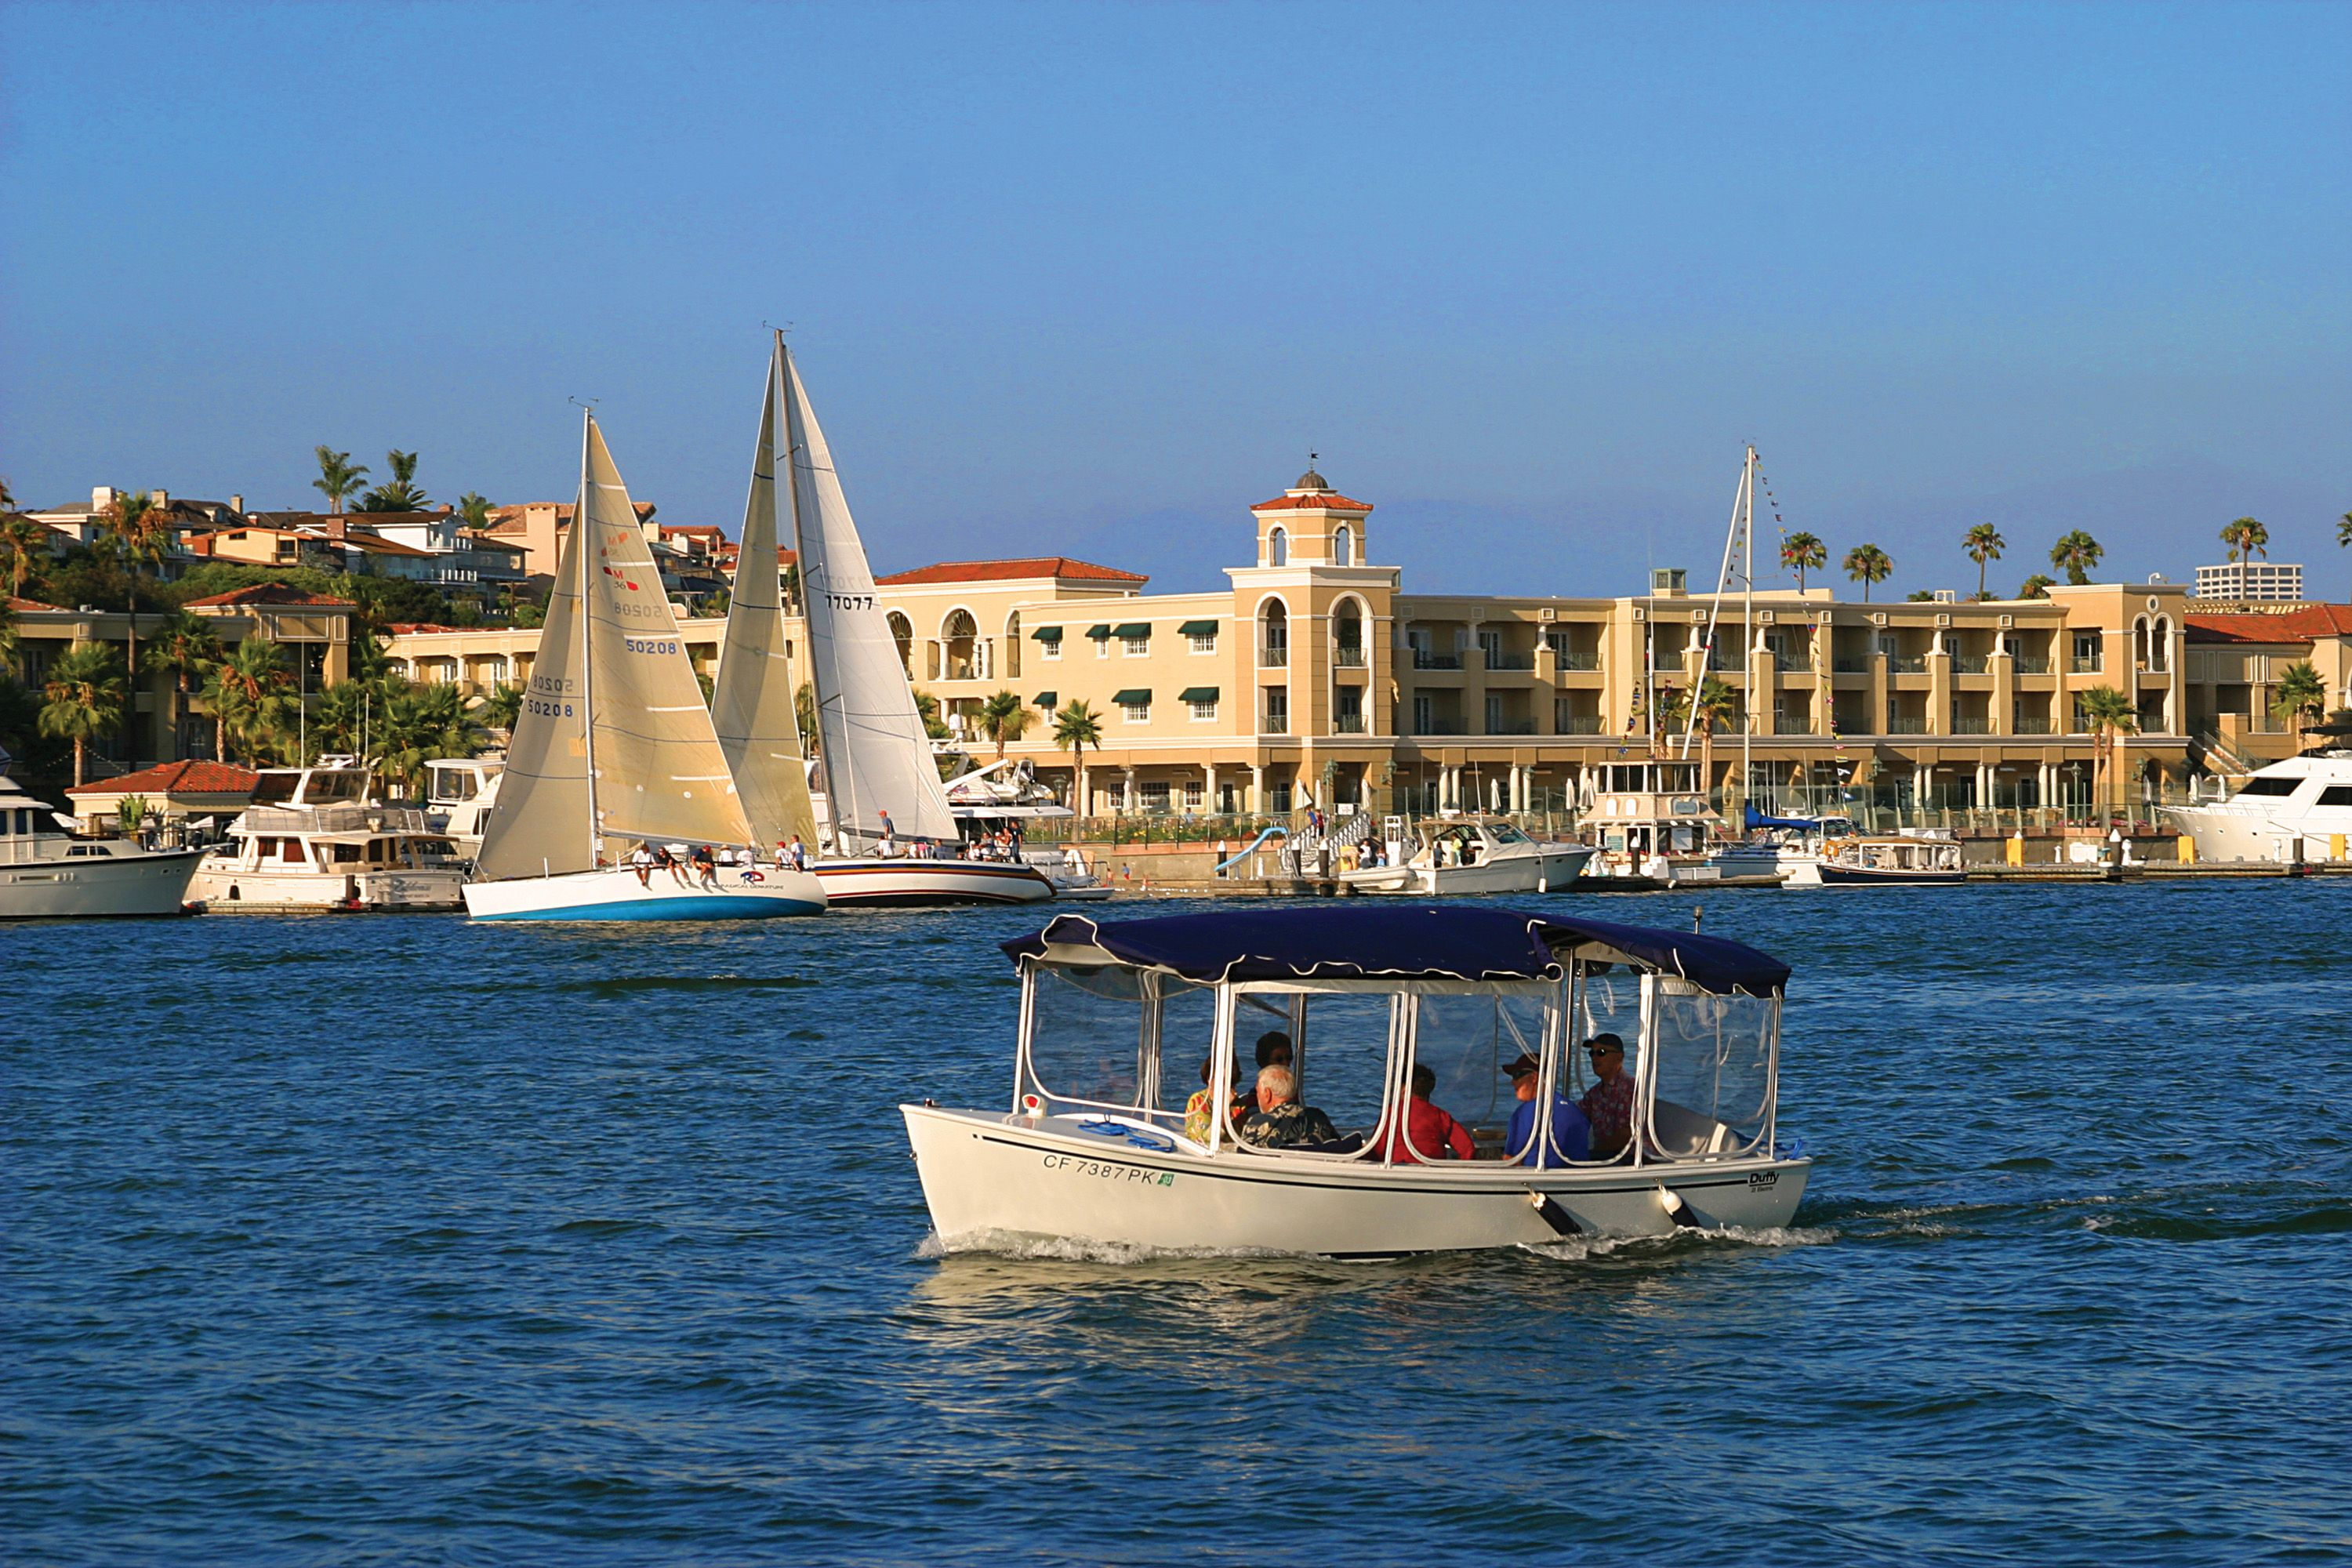 Set Sail For The Picturesque Balboa Bay Club Resort In Newport Beach Cailf